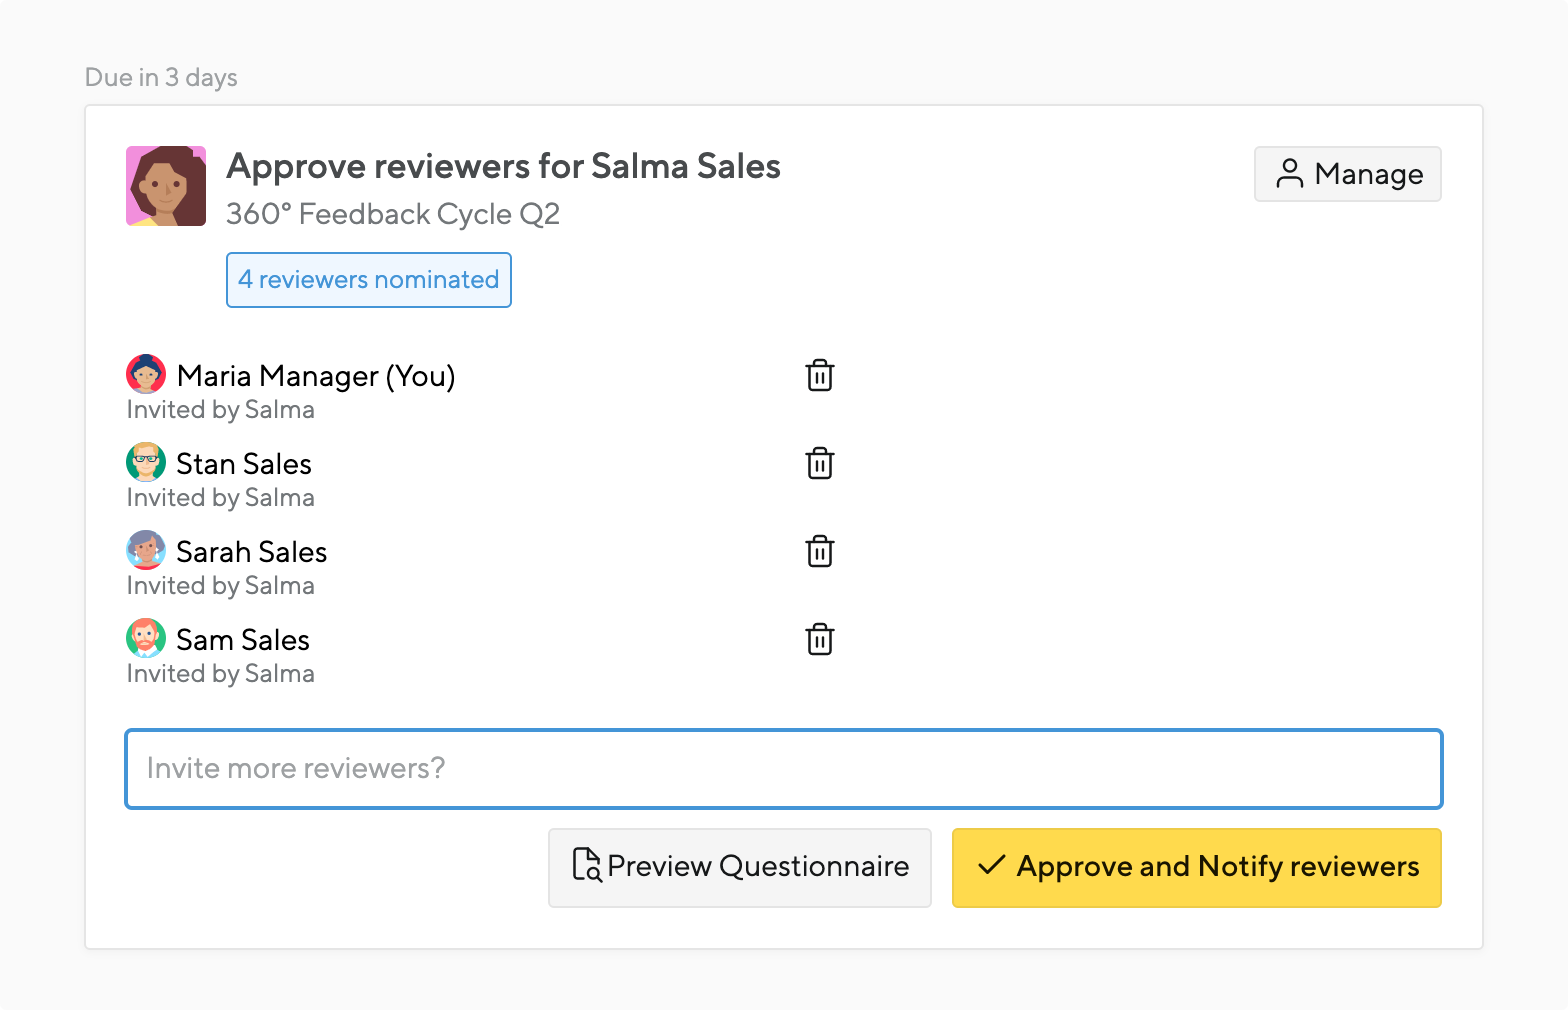 approval phase in a 360 degree review